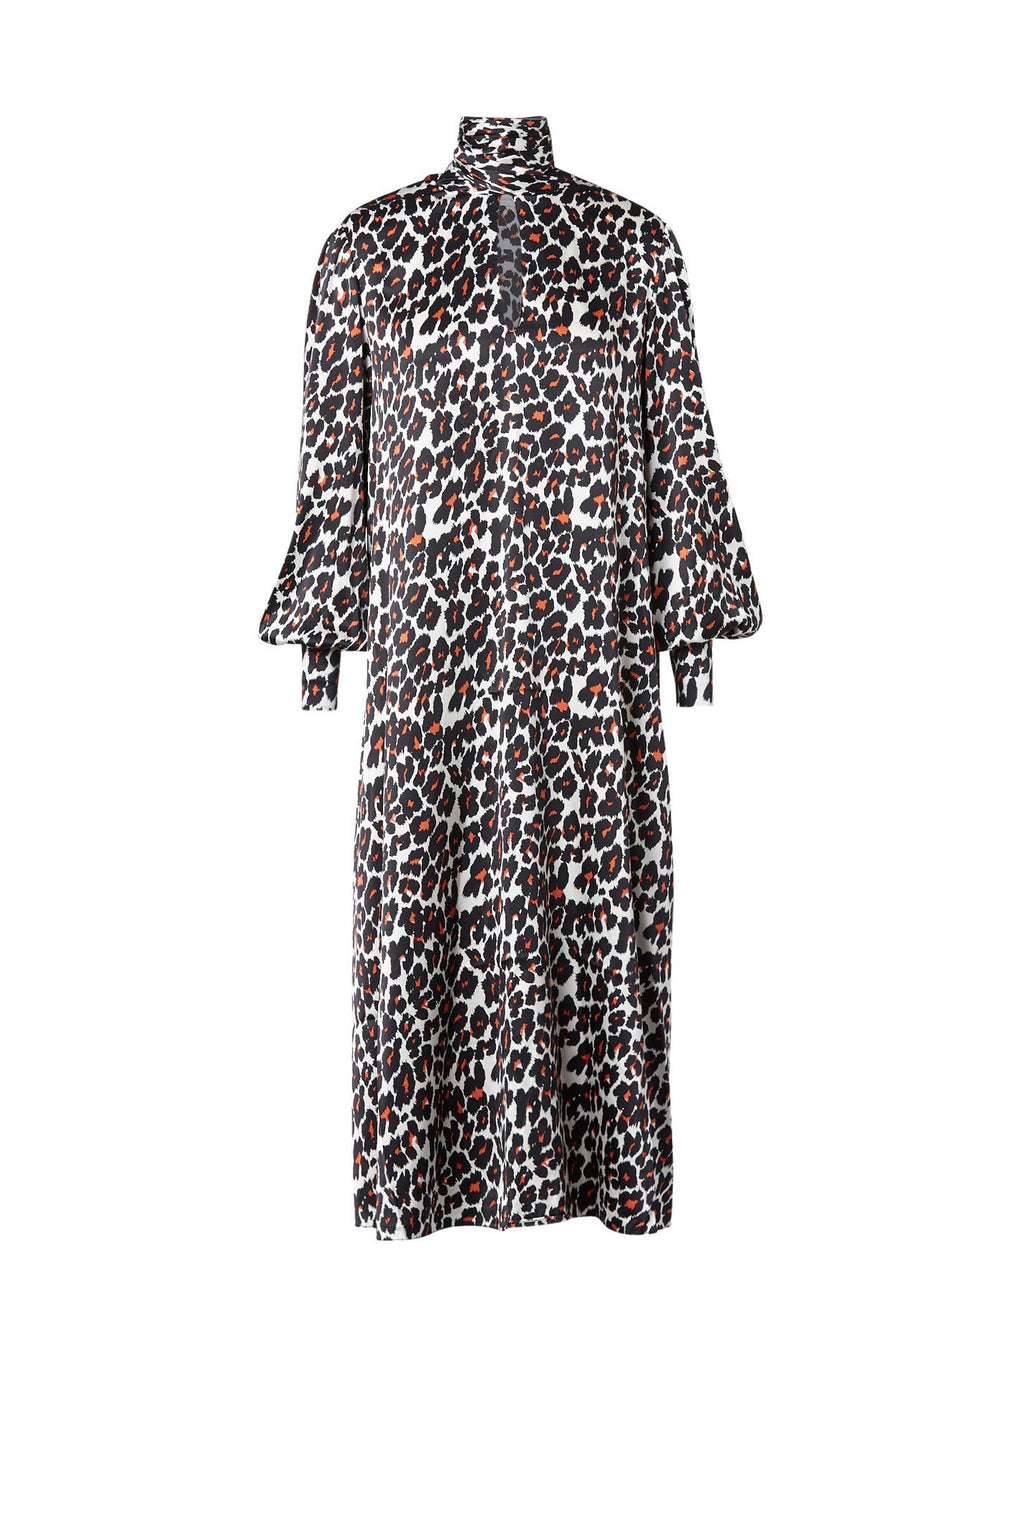 SILK LEOPARD PRINT DRESS